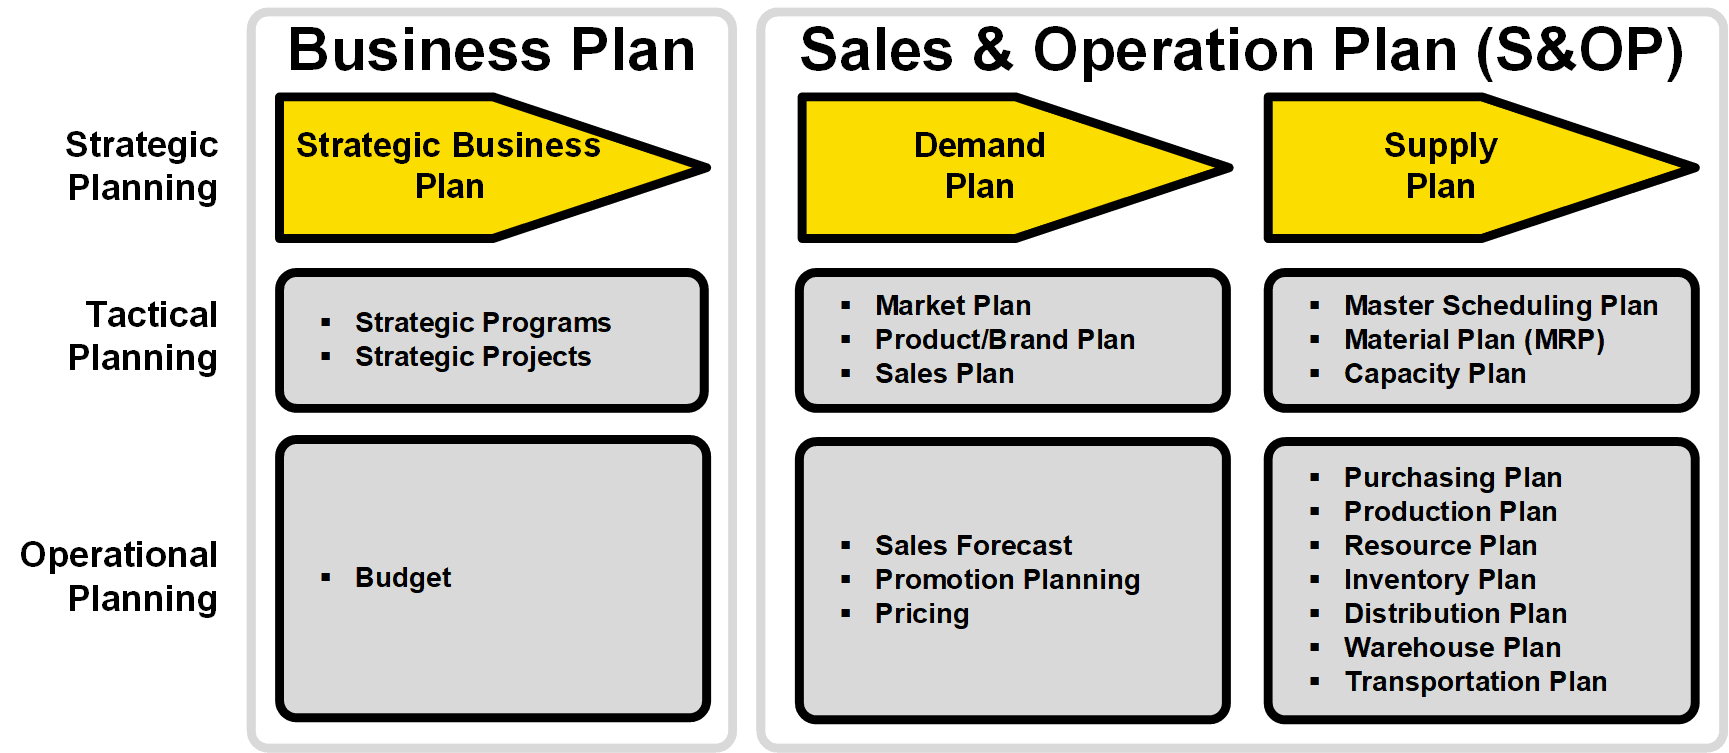 The Lost Link to Make Strategy Work: Sales & Operations